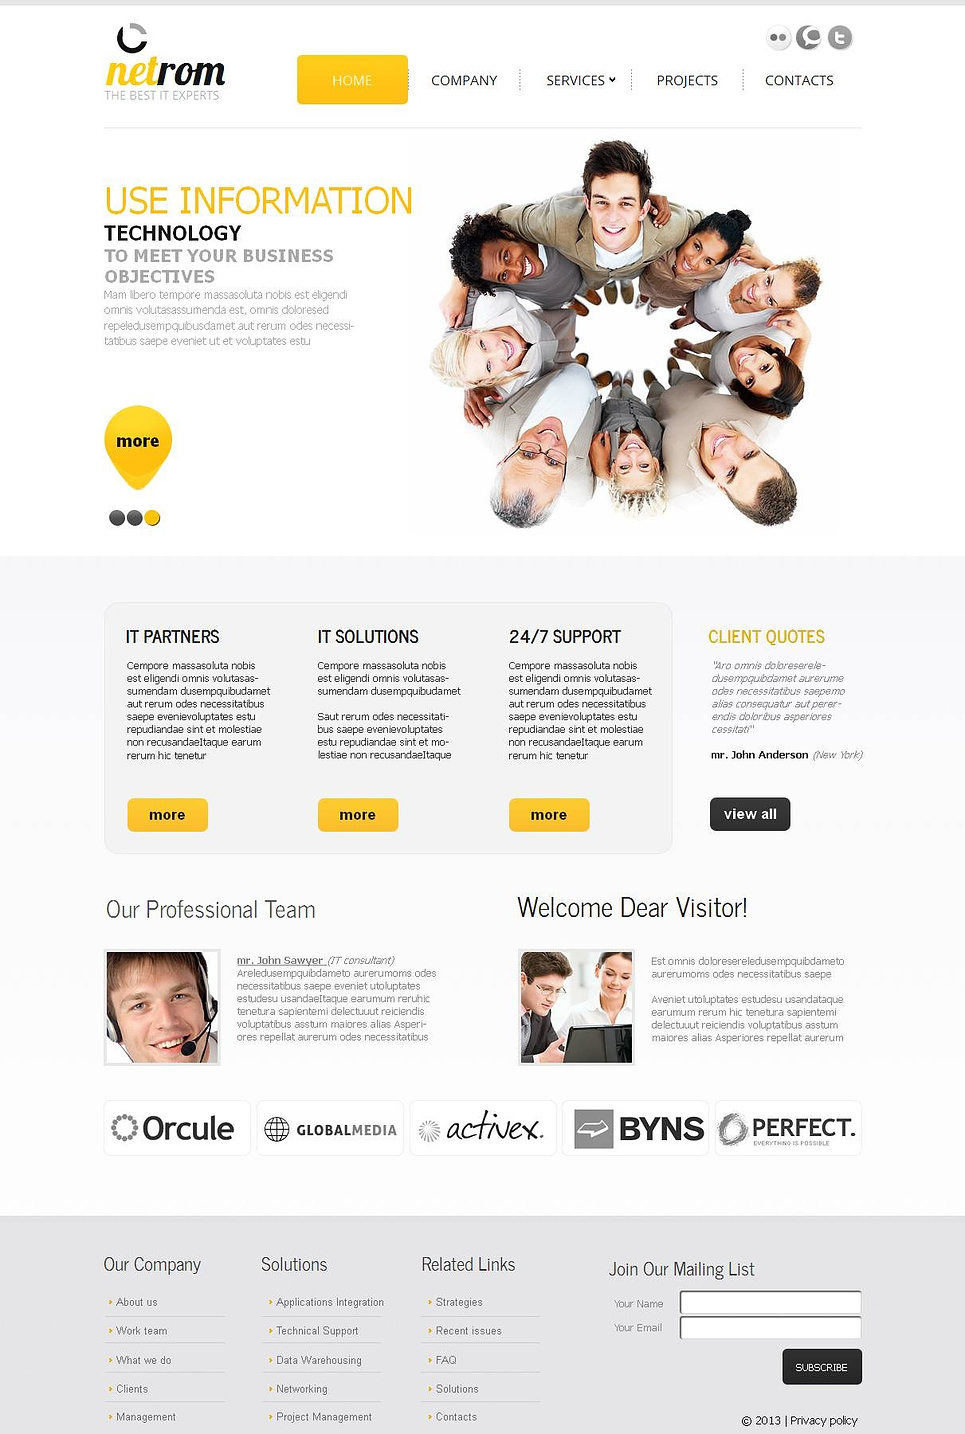 Gray Web Template with Saturated Yellow Accents - image